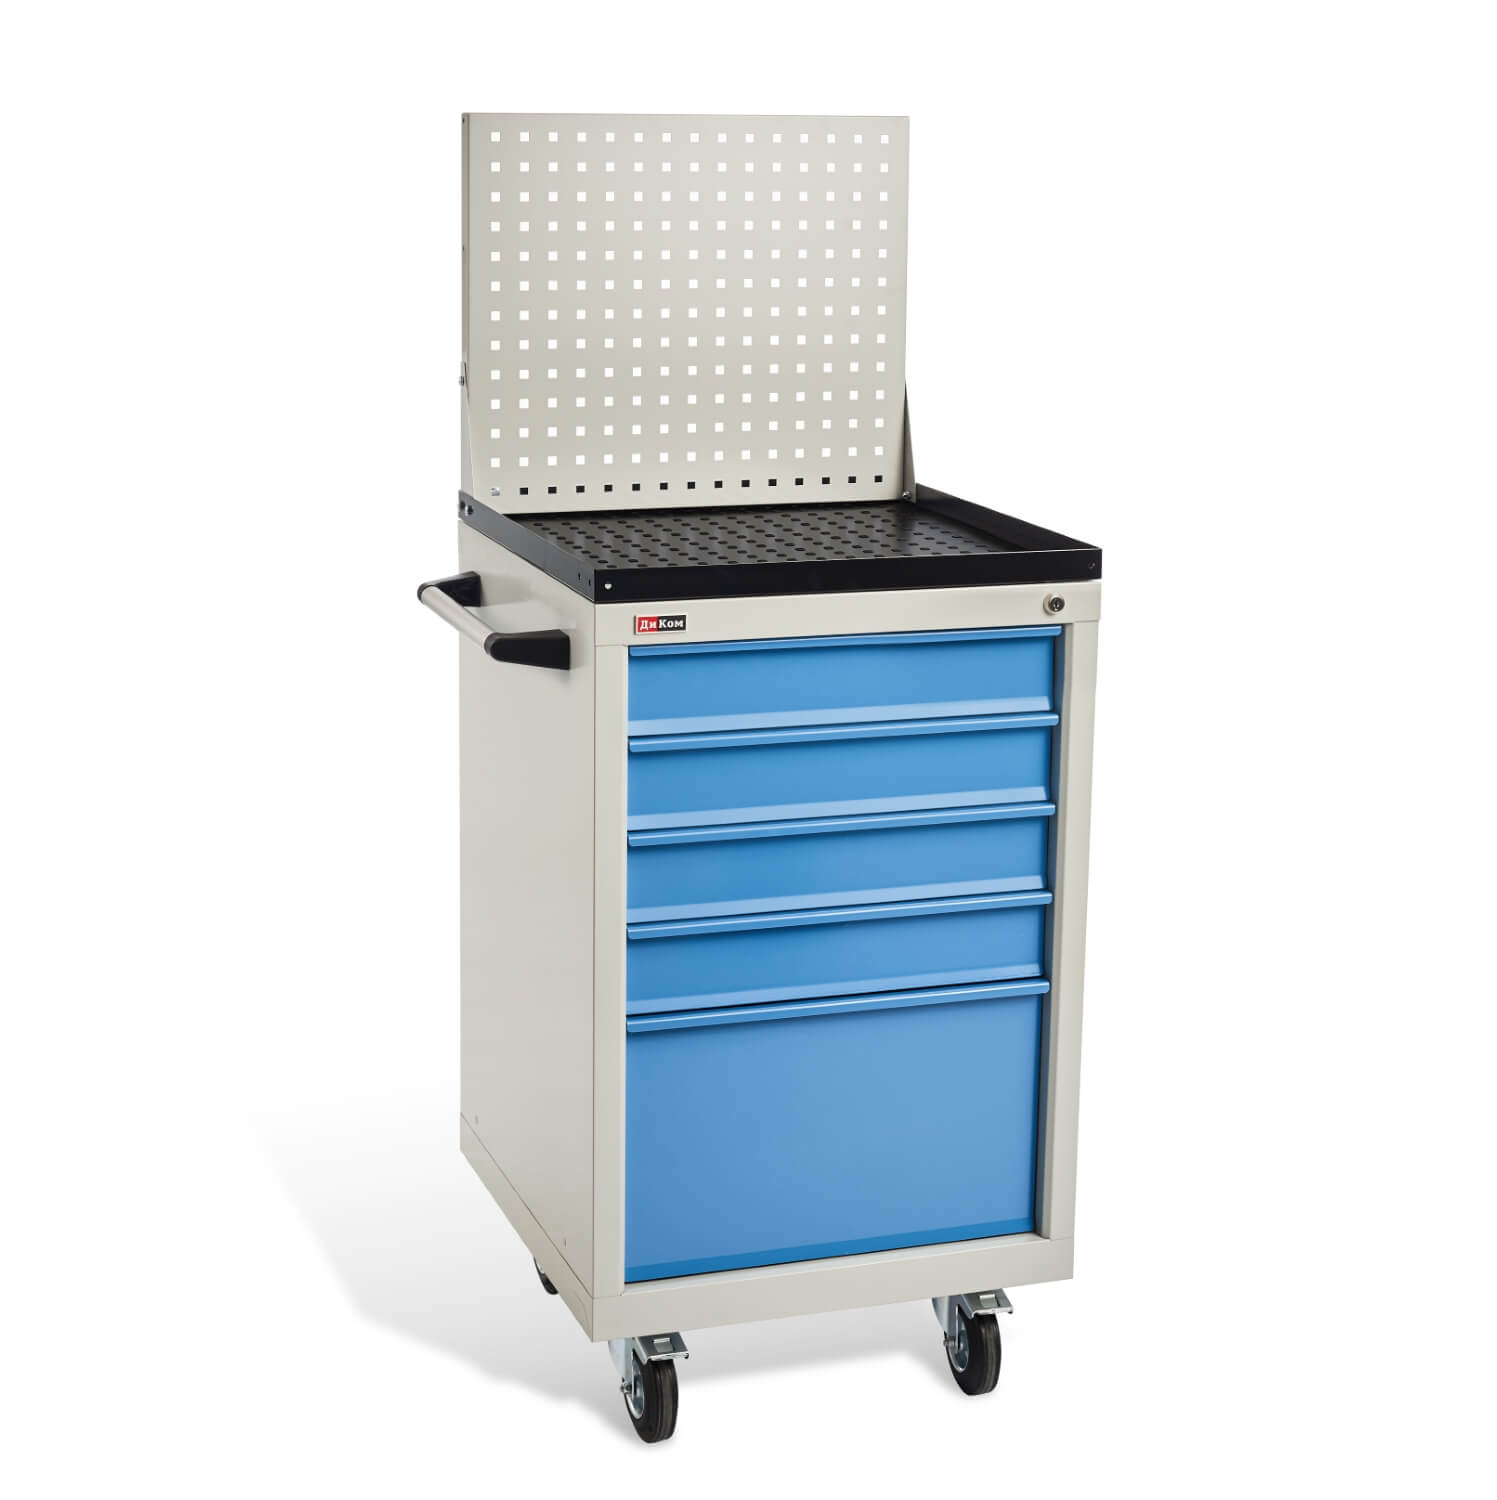 DiKom VL-015 Tool Cabinet with a Perforated Panel, Tray, Castors, and Side Handle